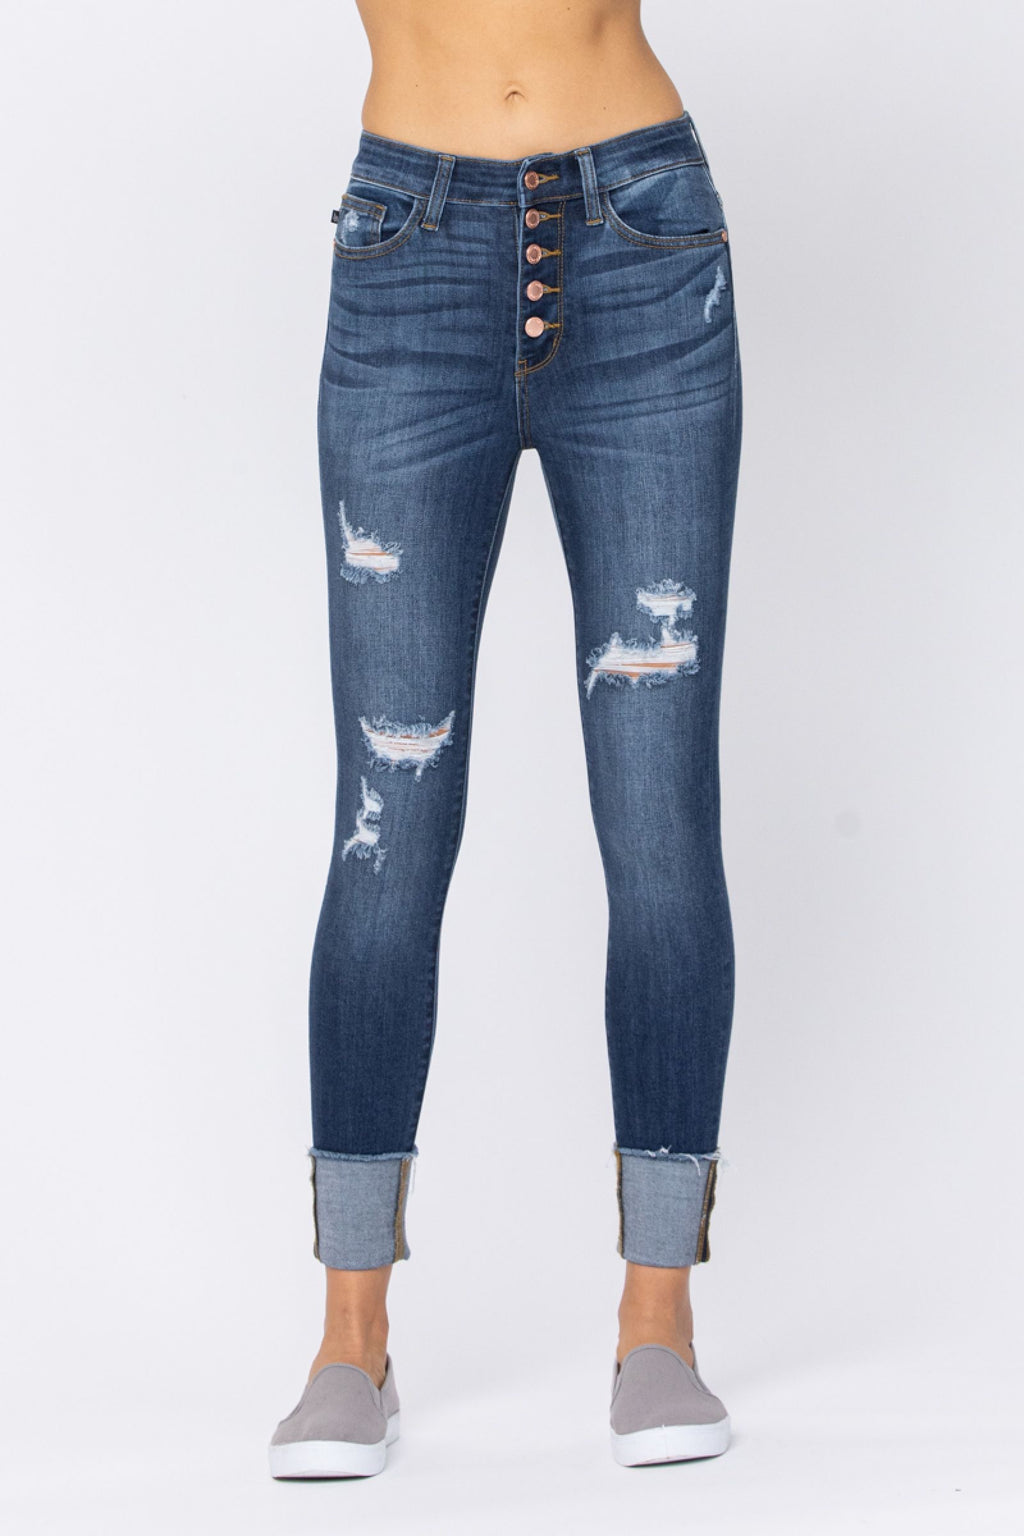 Judy Blue Button Fly Cuffed Skinny Jeans 82246